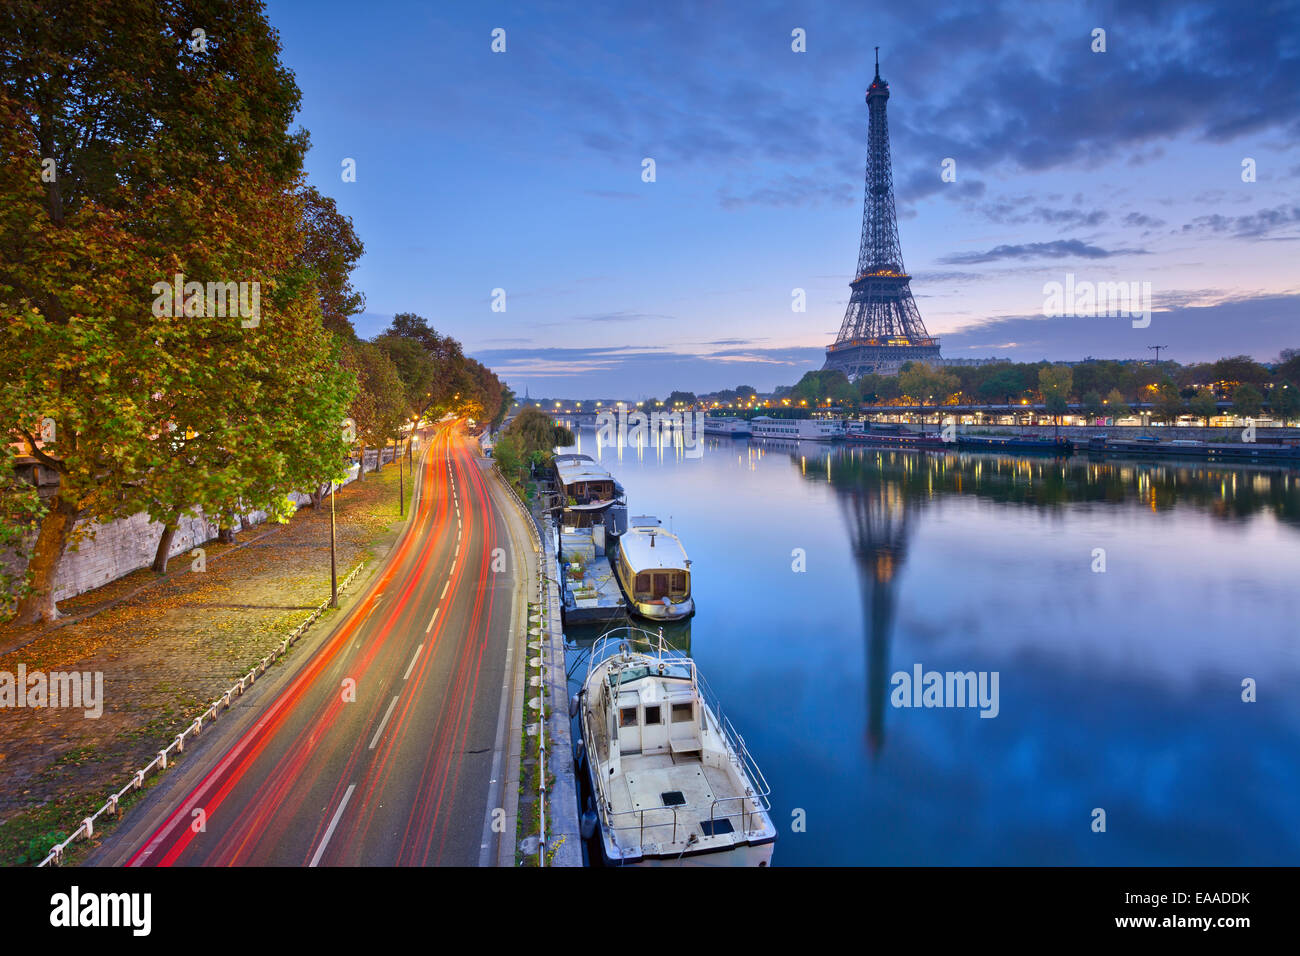 Image of Eiffel tower with the reflection in the Seine river. - Stock Image